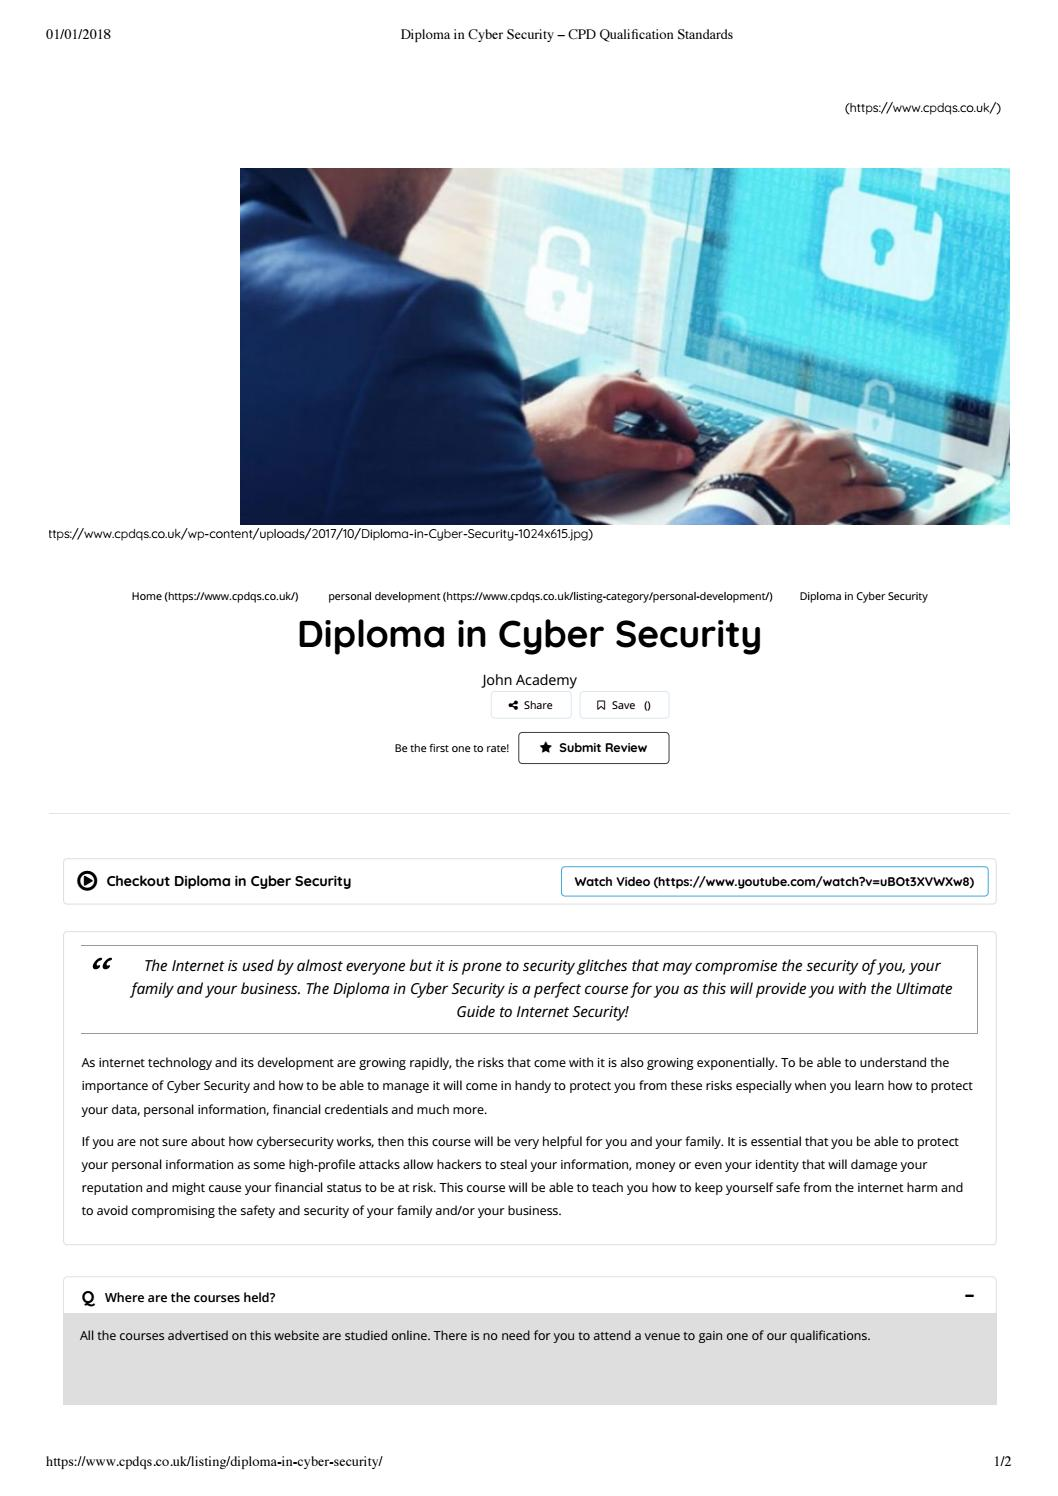 Diploma in cyber security – cpd qualification standards by CPD